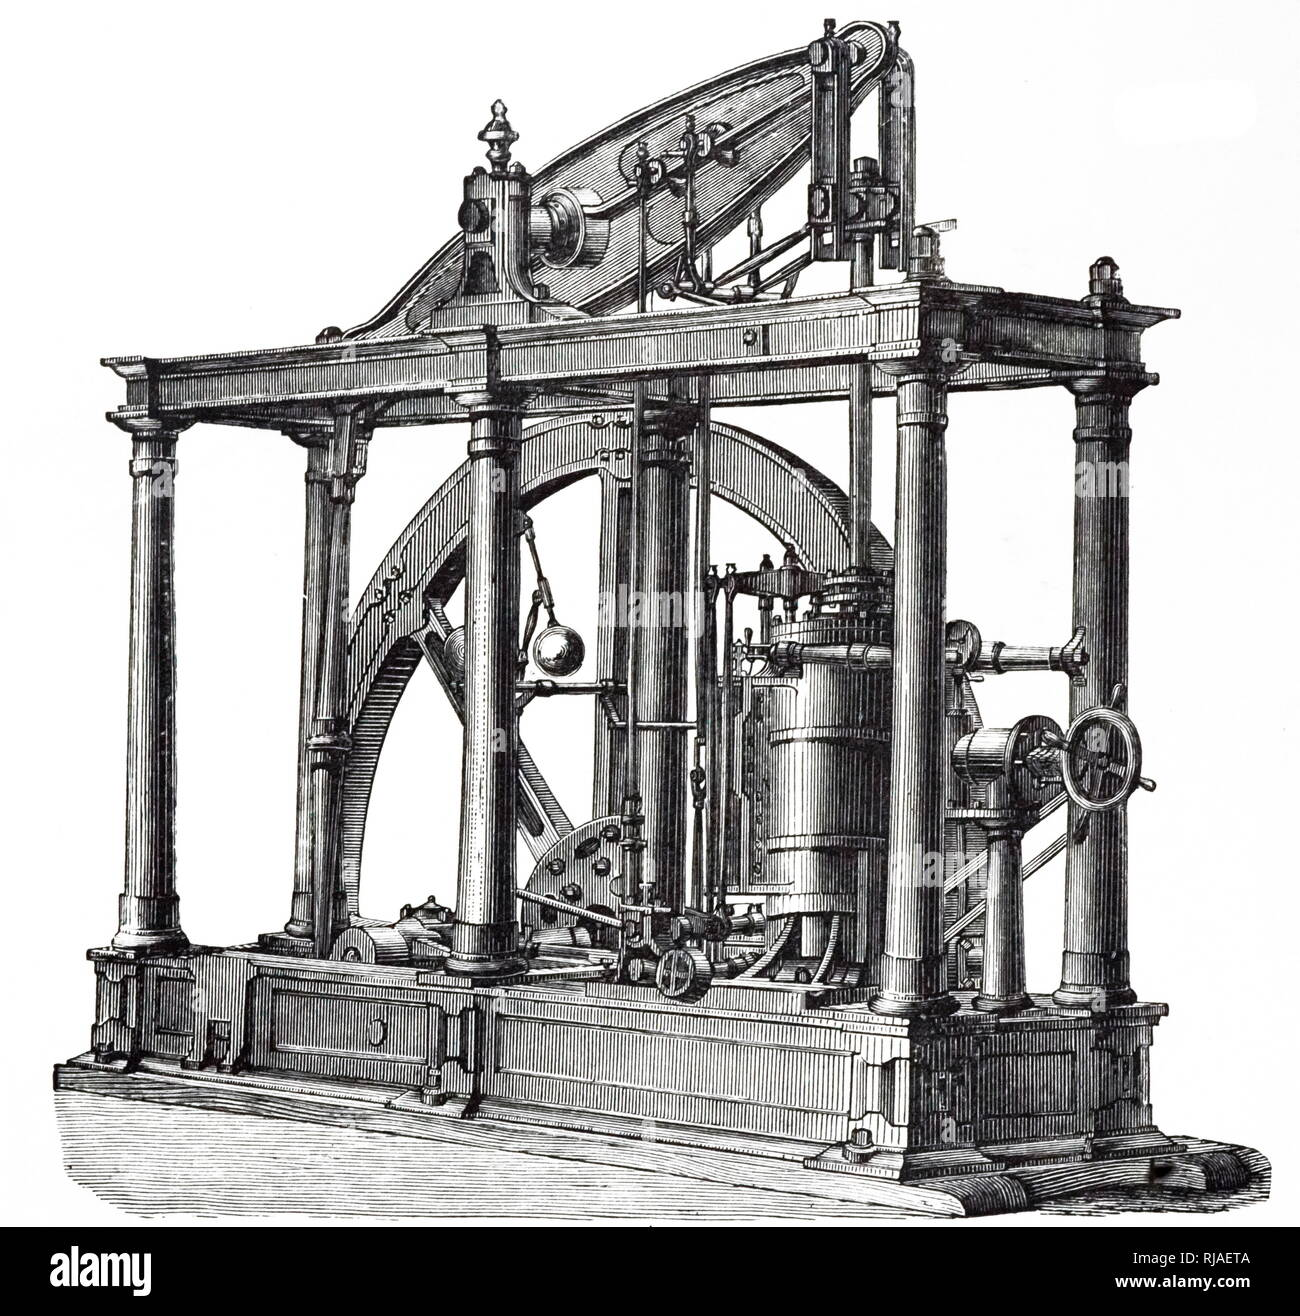 An engraving depicting a beam engine, a type of steam engine, suitable for working sugar mills or similar heavy machinery. Dated 19th century - Stock Image